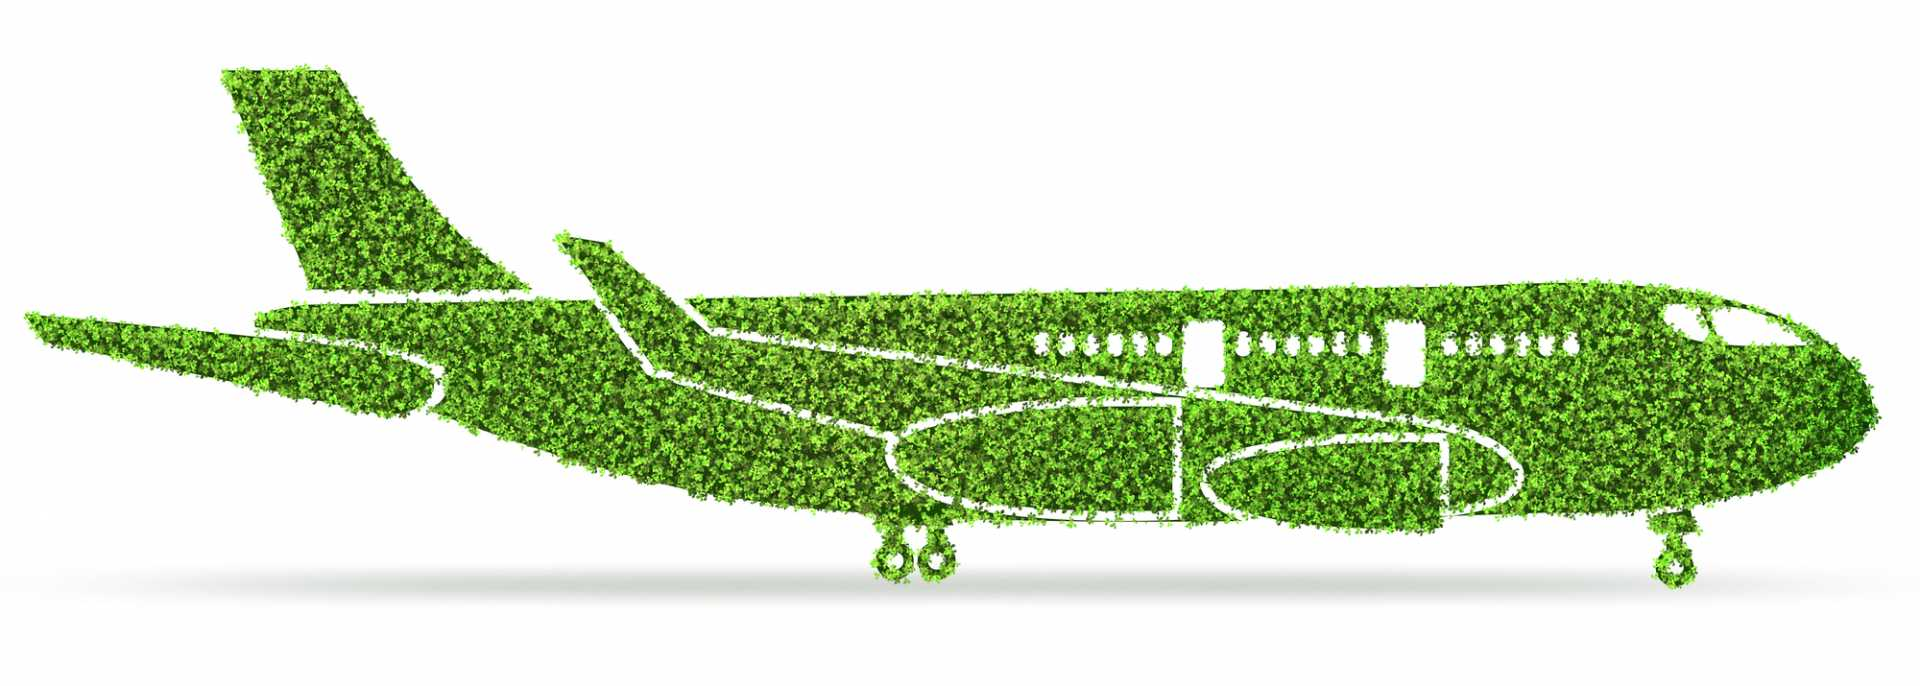 Electric Planes - Green environmentally friendly vehicle concept - 3d rendering - image courtesy of Depositphotos.